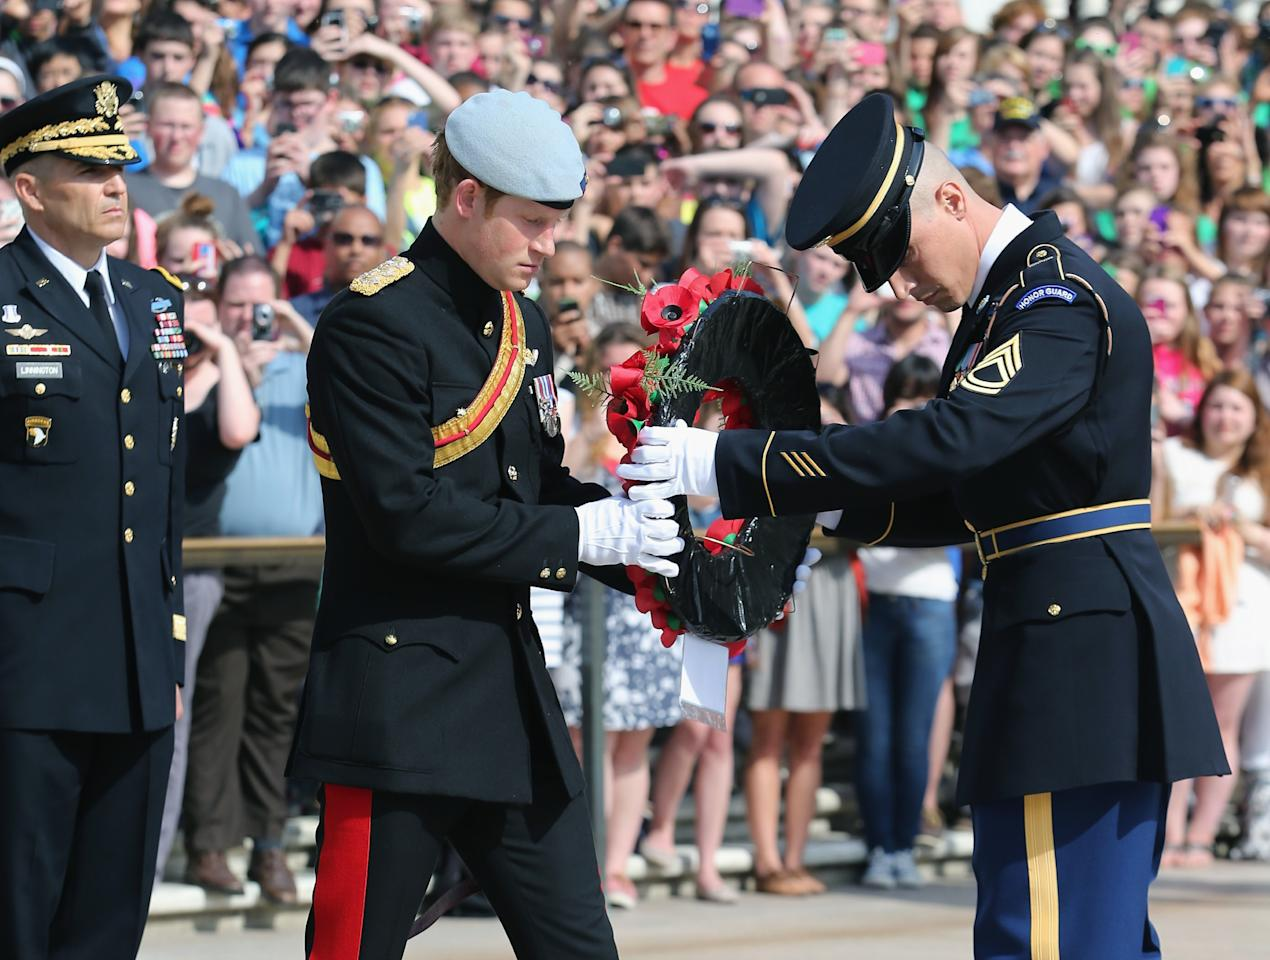 ARLINGTON, VA - MAY 10:  HRH Prince Harry wearing his No. 1 ceremonial uniform of The Blues and Royals along with an honor guard lays a wreath as he pays his respects to the victims of the Afghanistan conflict and the tomb of the unknown soldieras Major General Michael Linnington looks on during the second day of his visit to the United States at Arlington National Cemetery on May 10, 2013 in Arlington, Virginia. HRH will be undertaking engagements on behalf of charities with which the Prince is closely associated on behalf also of HM Government, with a central theme of supporting injured service personnel from the UK and US forces.  (Photo by Chris Jackson/Getty Images)